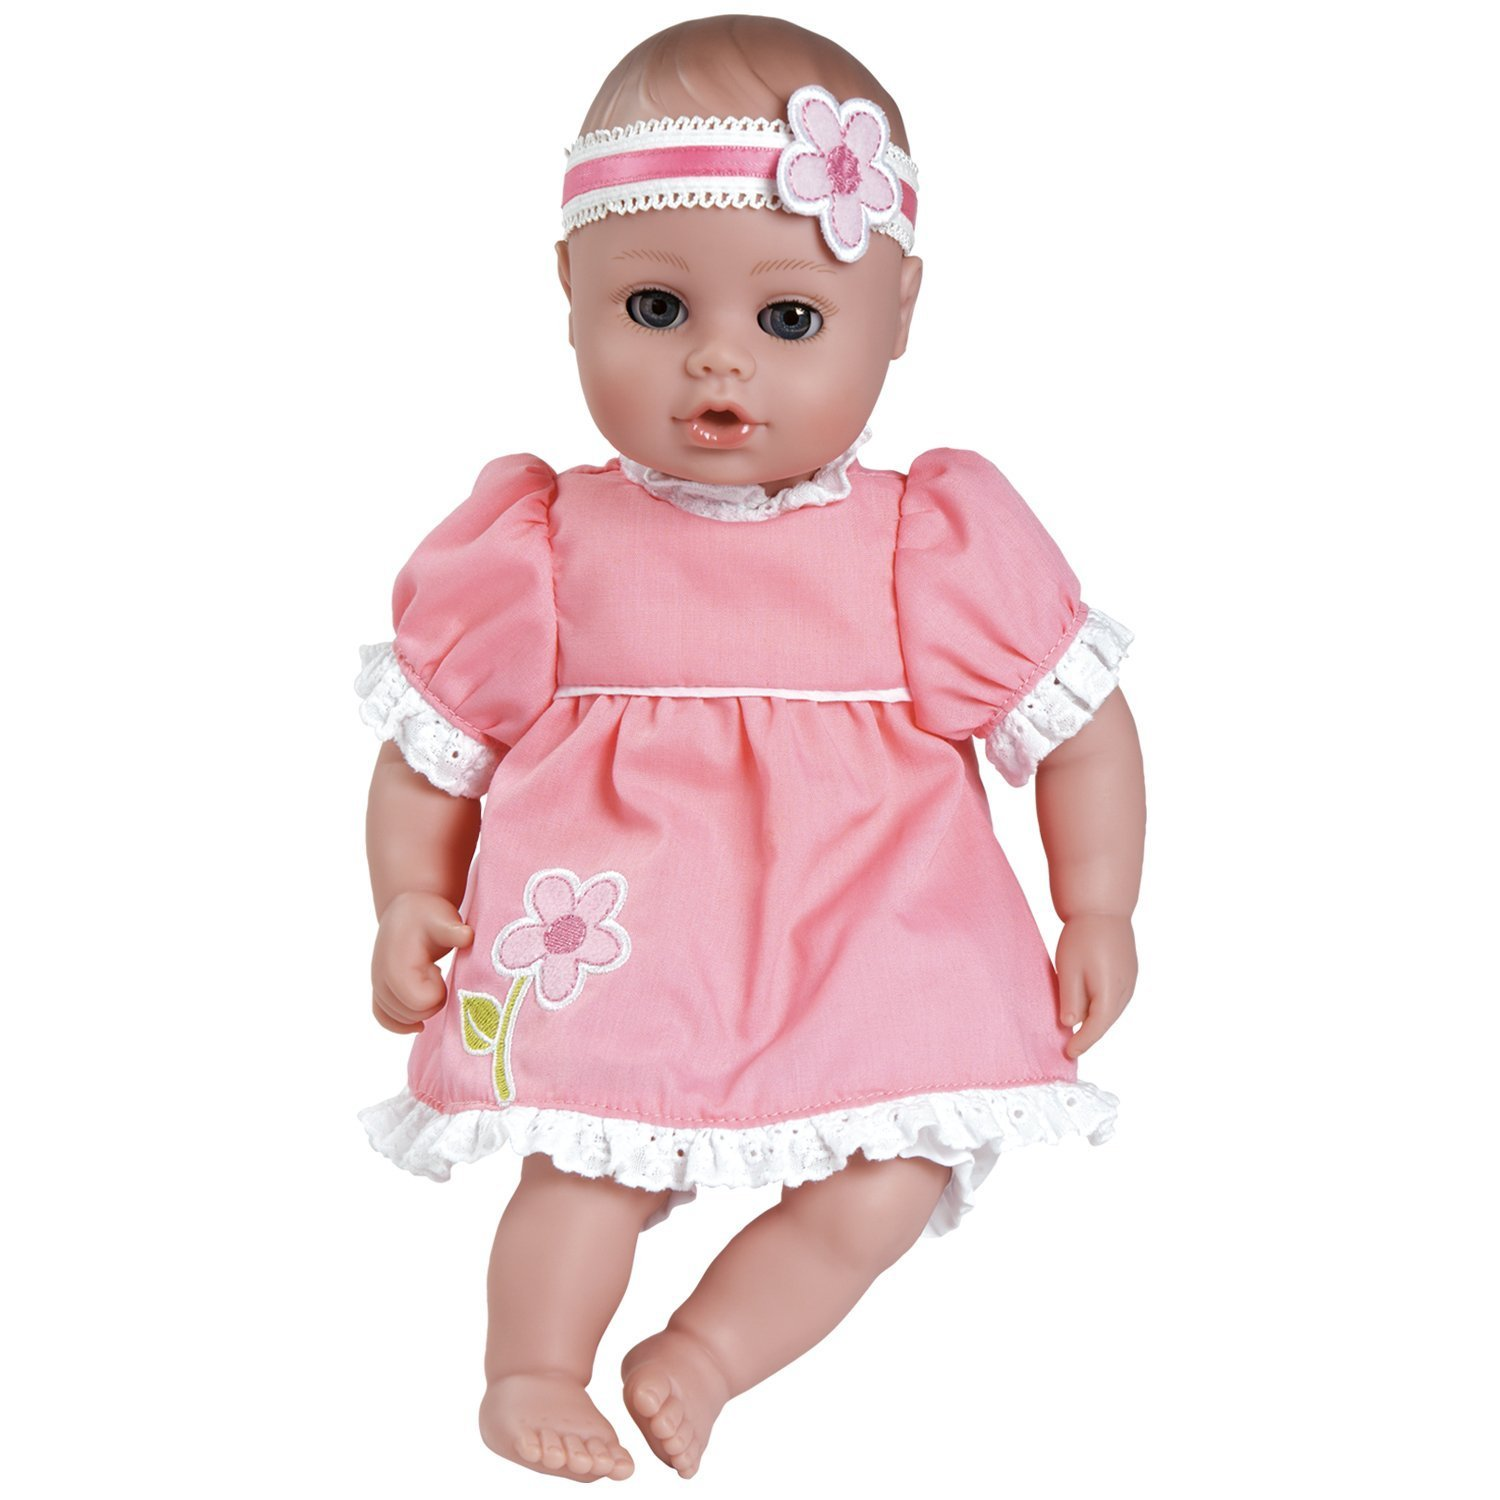 Playtime Baby Garden Party Baby Doll 13""